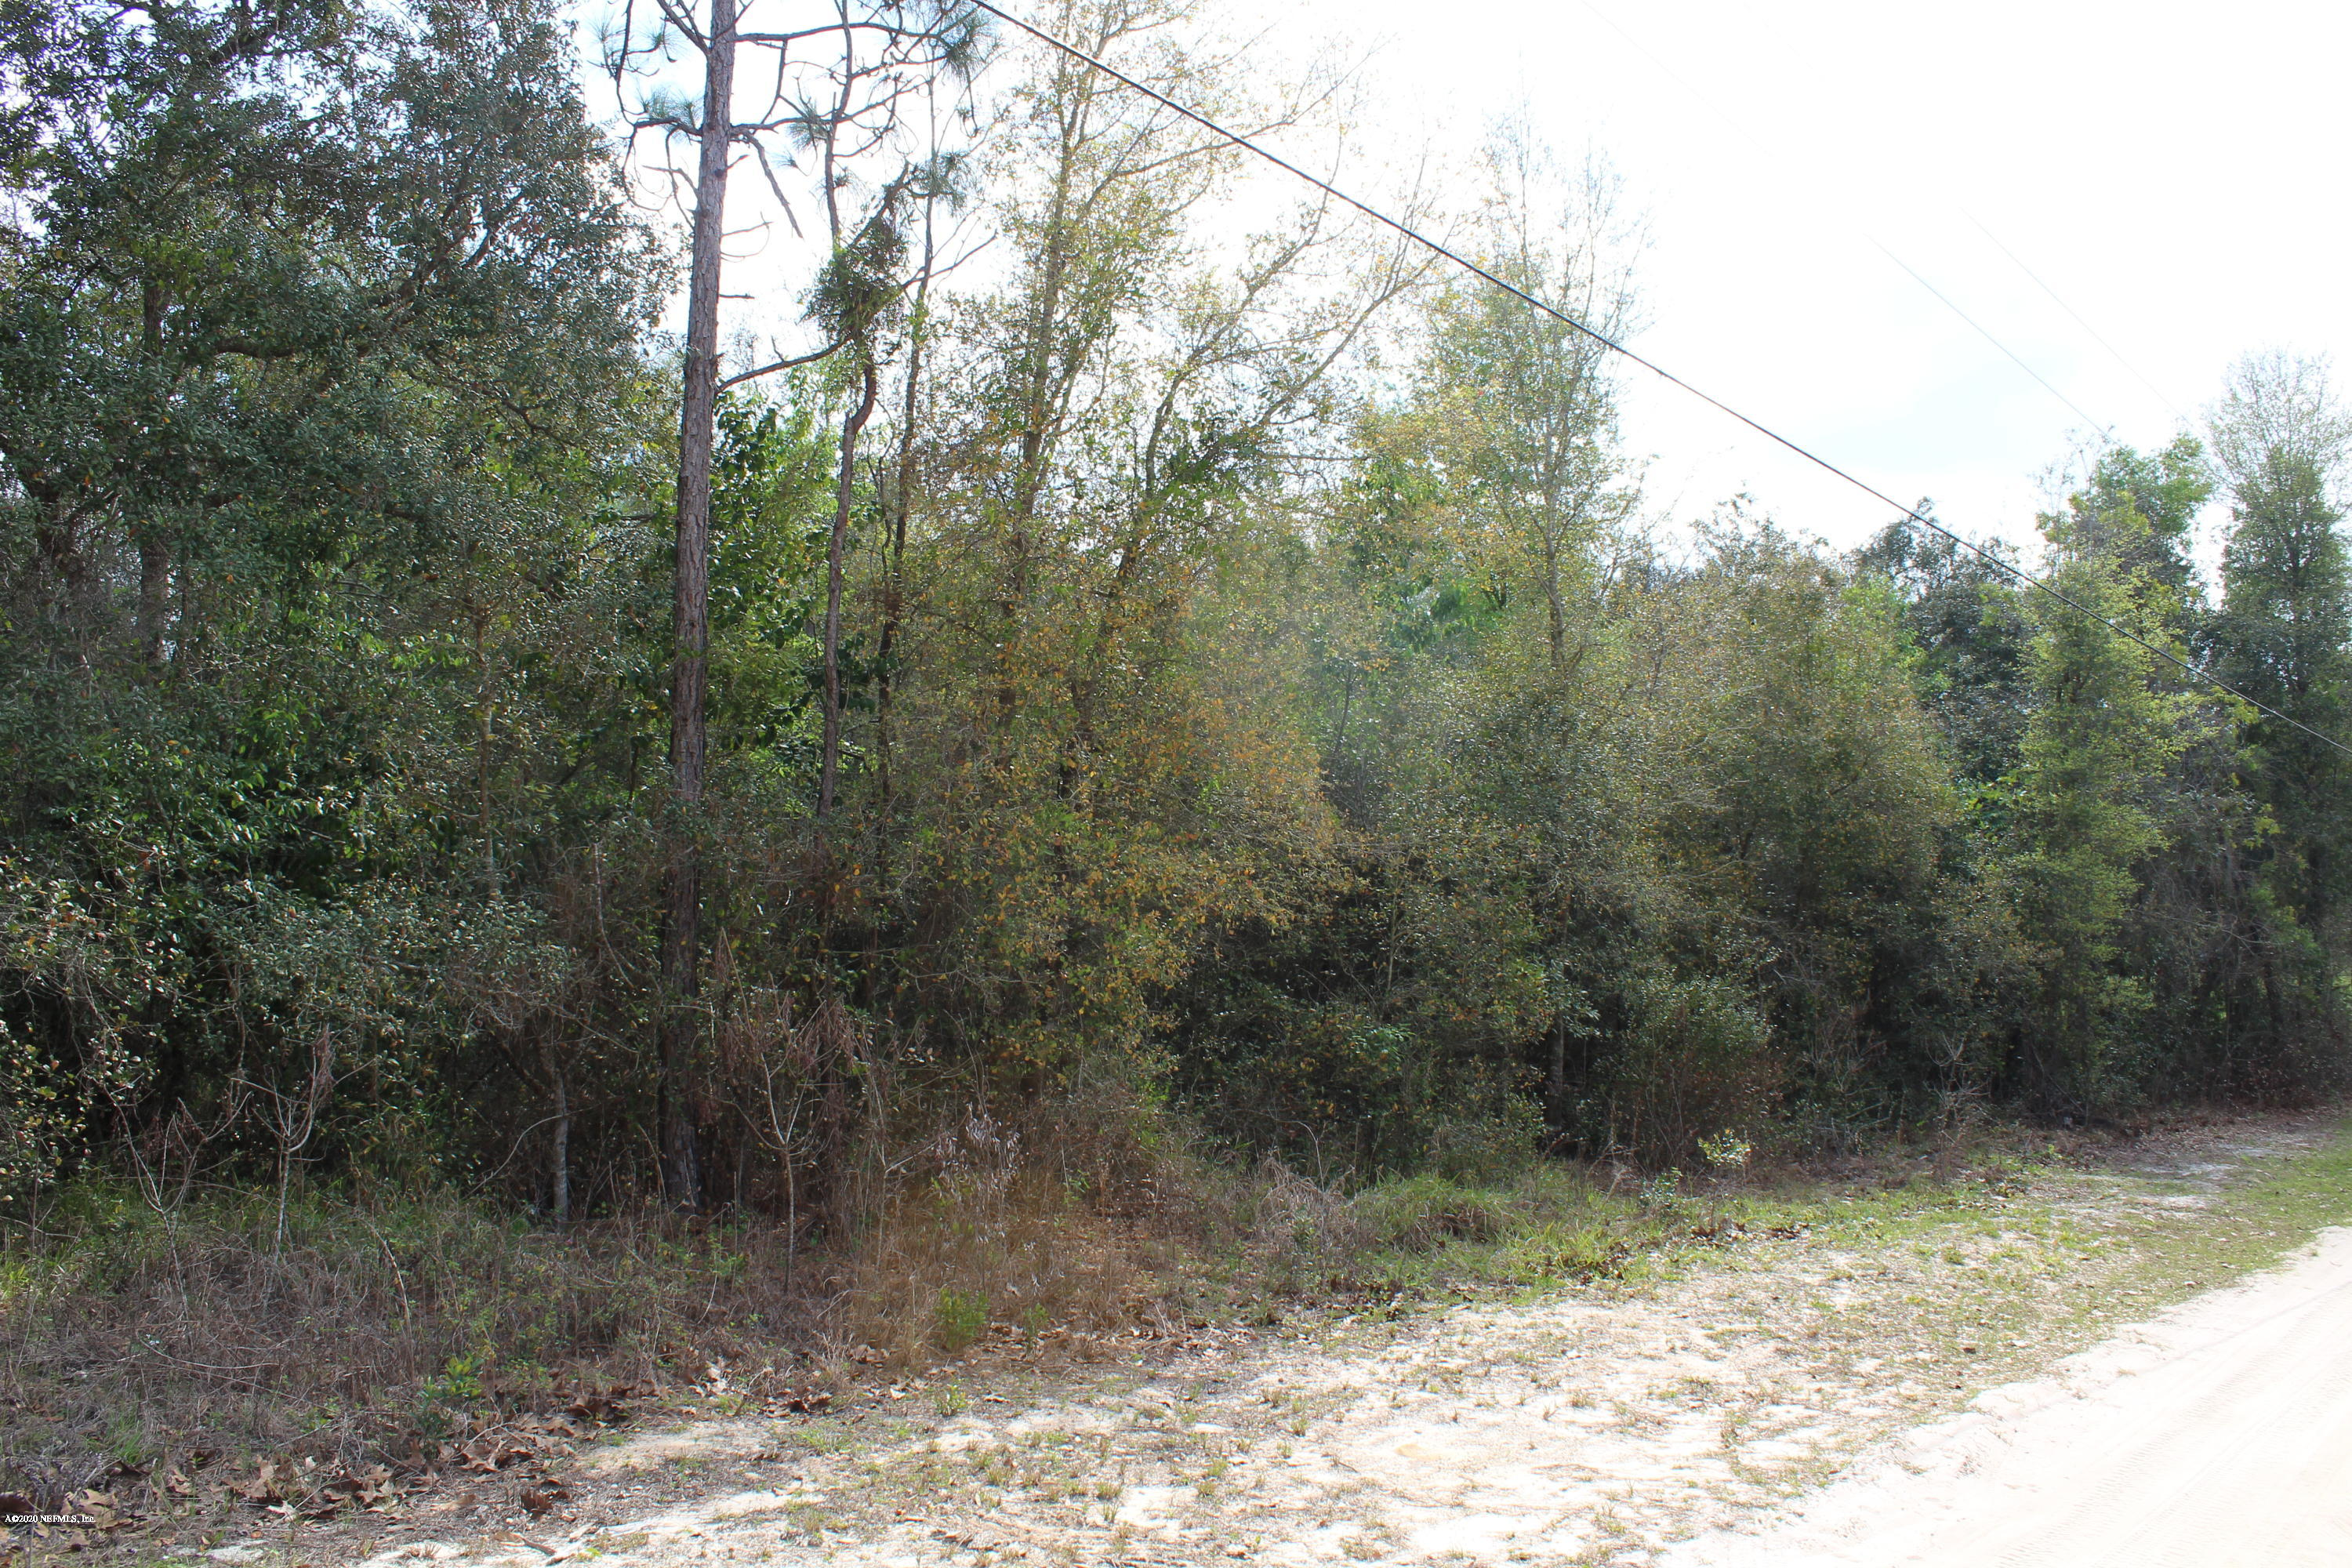 0 LOCH LOMMOND, KEYSTONE HEIGHTS, FLORIDA 32656, ,Vacant land,For sale,LOCH LOMMOND,1043973